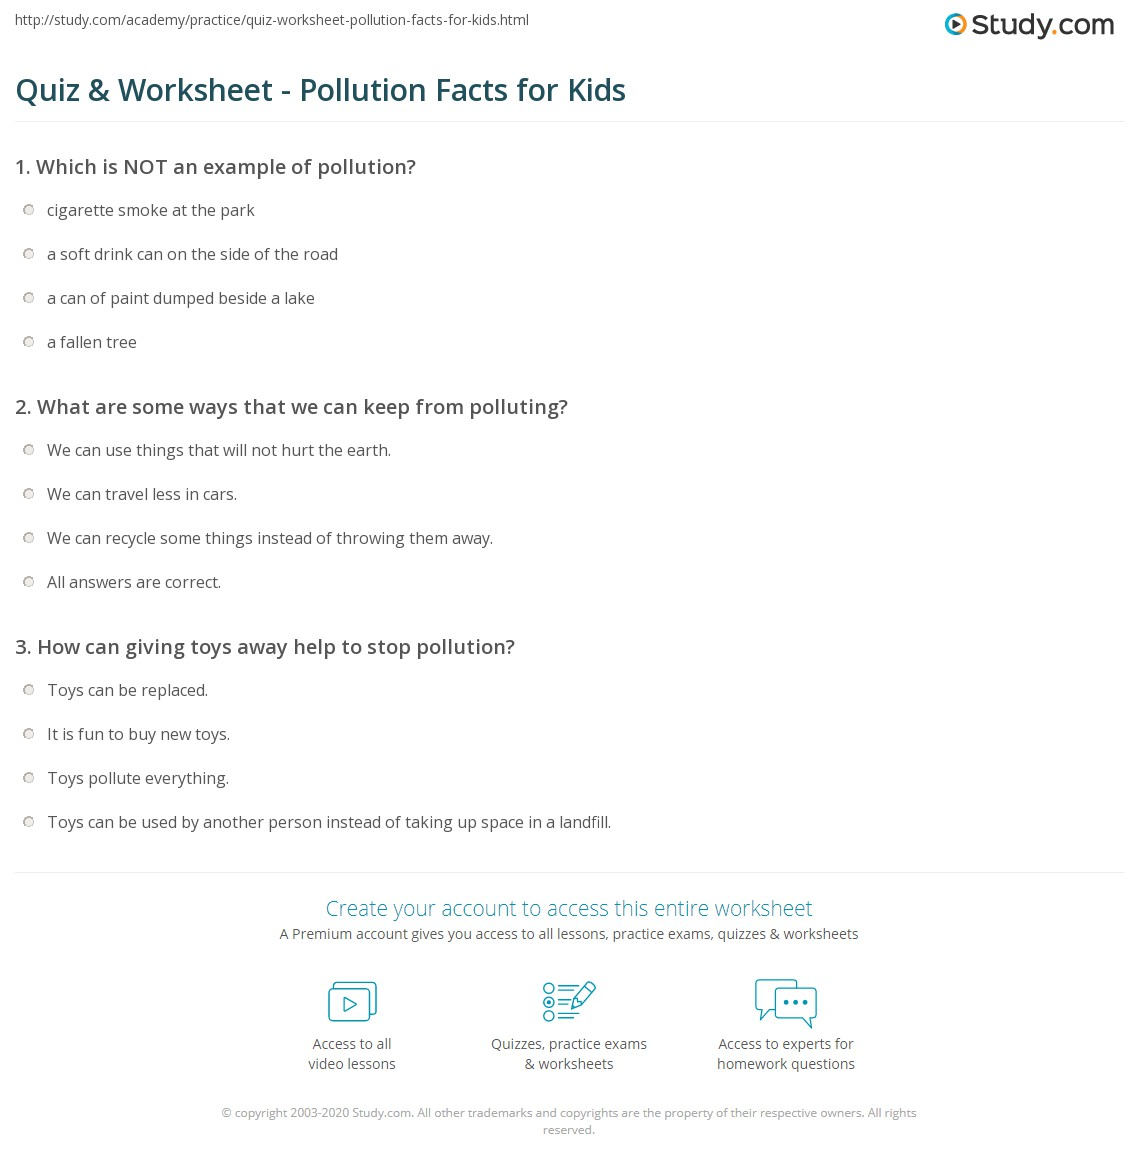 quiz-worksheet-pollution-facts-for-kids Take Away Math Worksheets For Grade on math kangaroo grade 1, tenses worksheet grade 1, math activity sheets for 1st graders, adding and subtracting worksheets grade 1, math addition subtraction worksheets grade 1, printables for grade 1, reading for grade 1, vowels worksheet for grade 1, subtraction for grade 1, word list grade 1, eureka math grade 1, language worksheets grade 1, math minutes 1 grade 3, mental math worksheet grade 1, books grade 1, reading worksheets grade 1, envision math grade 1, comprehension for grade 1, fun activities for grade 1,